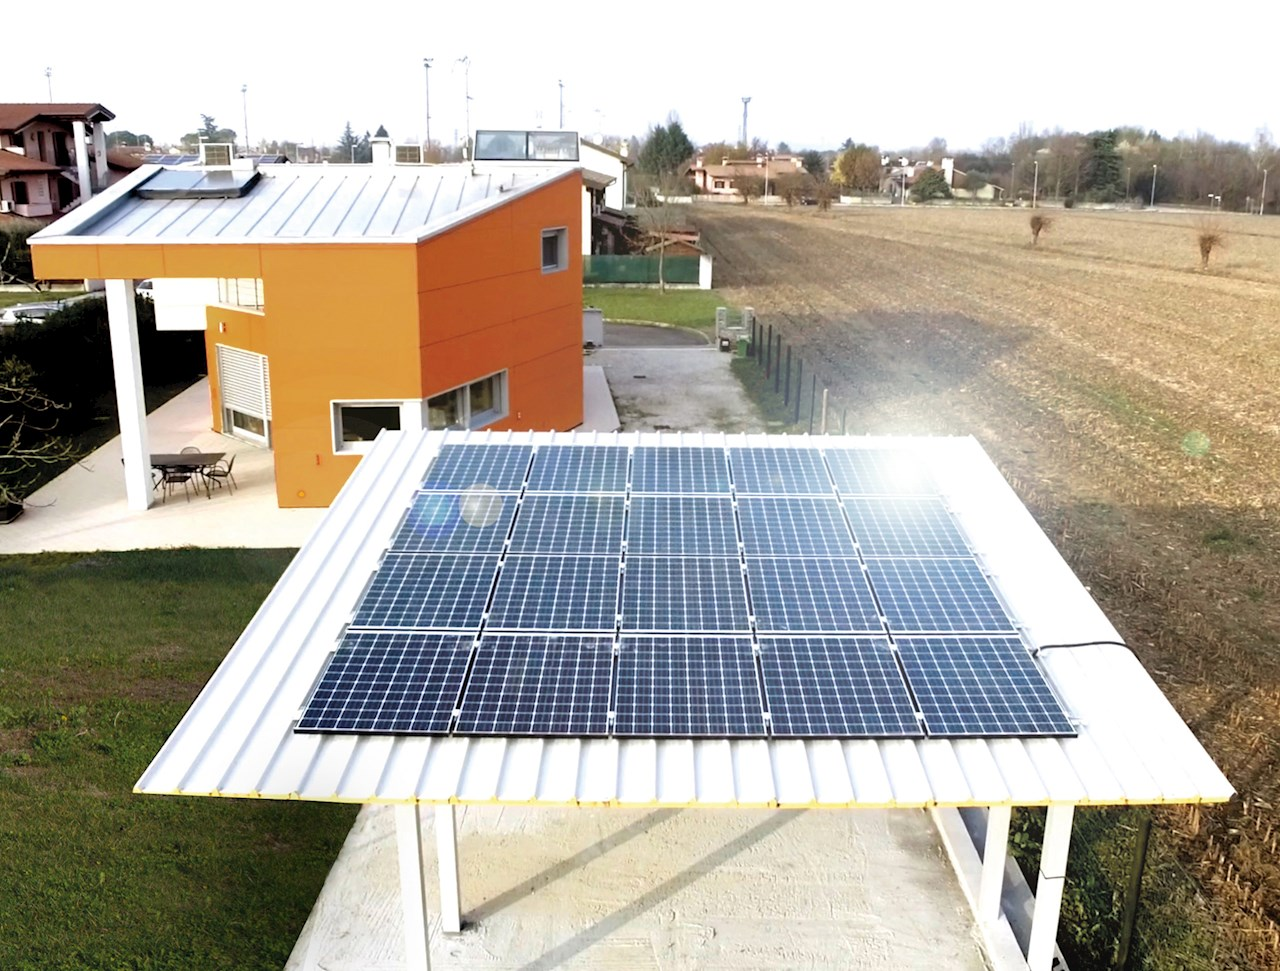 Photo voltaic installations combined with home automation